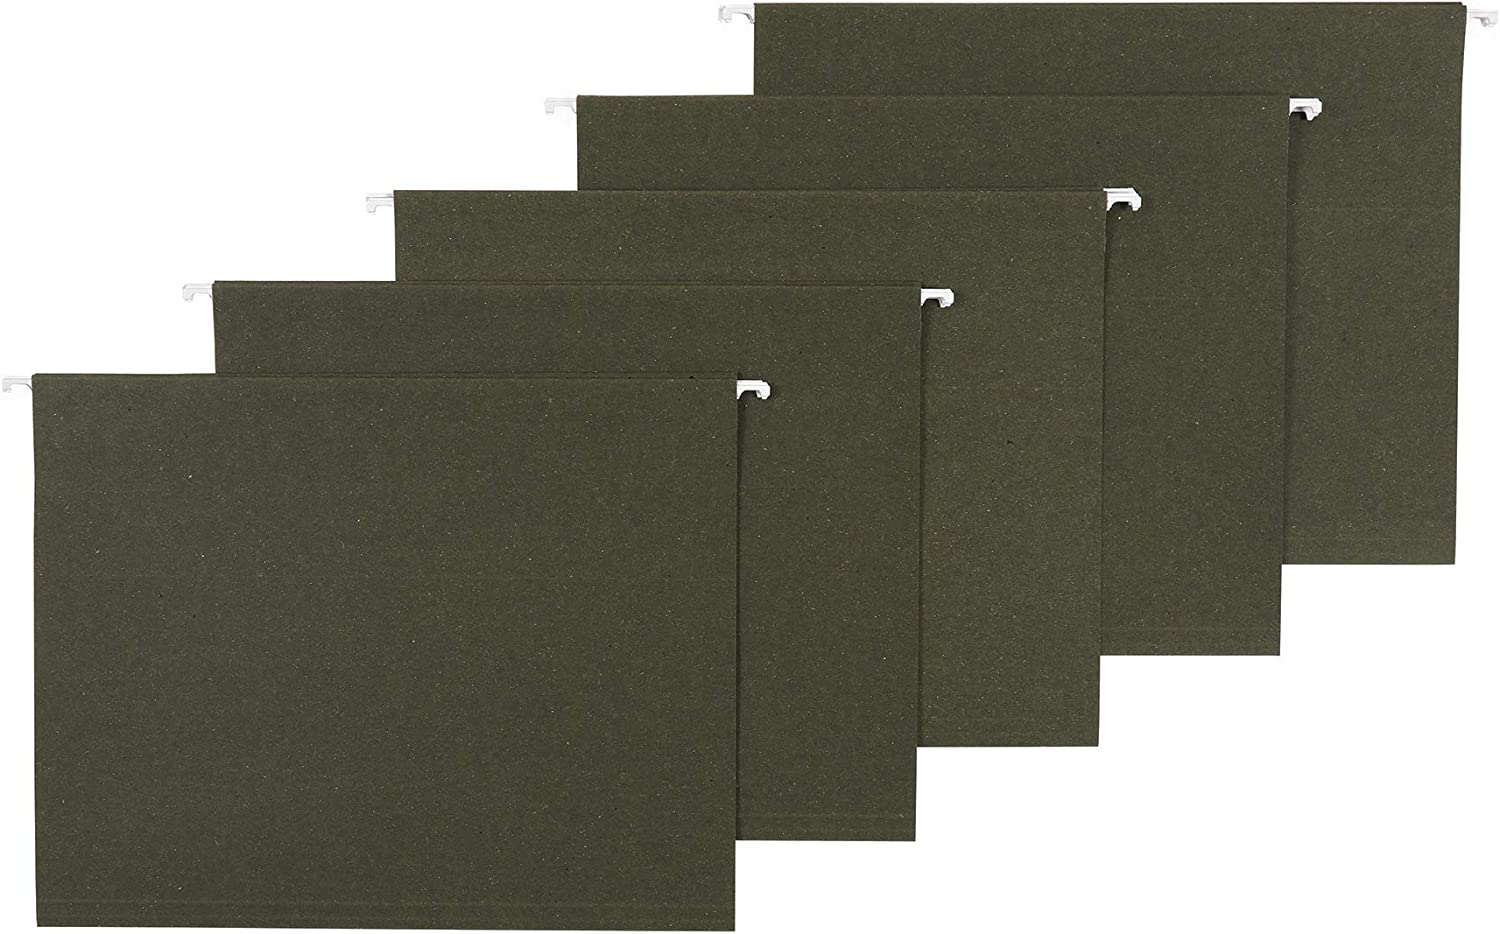 AmazonBasics Recycled Hanging Folders, Letter Size, Standard Green, 1/3 tabs, 25-pack